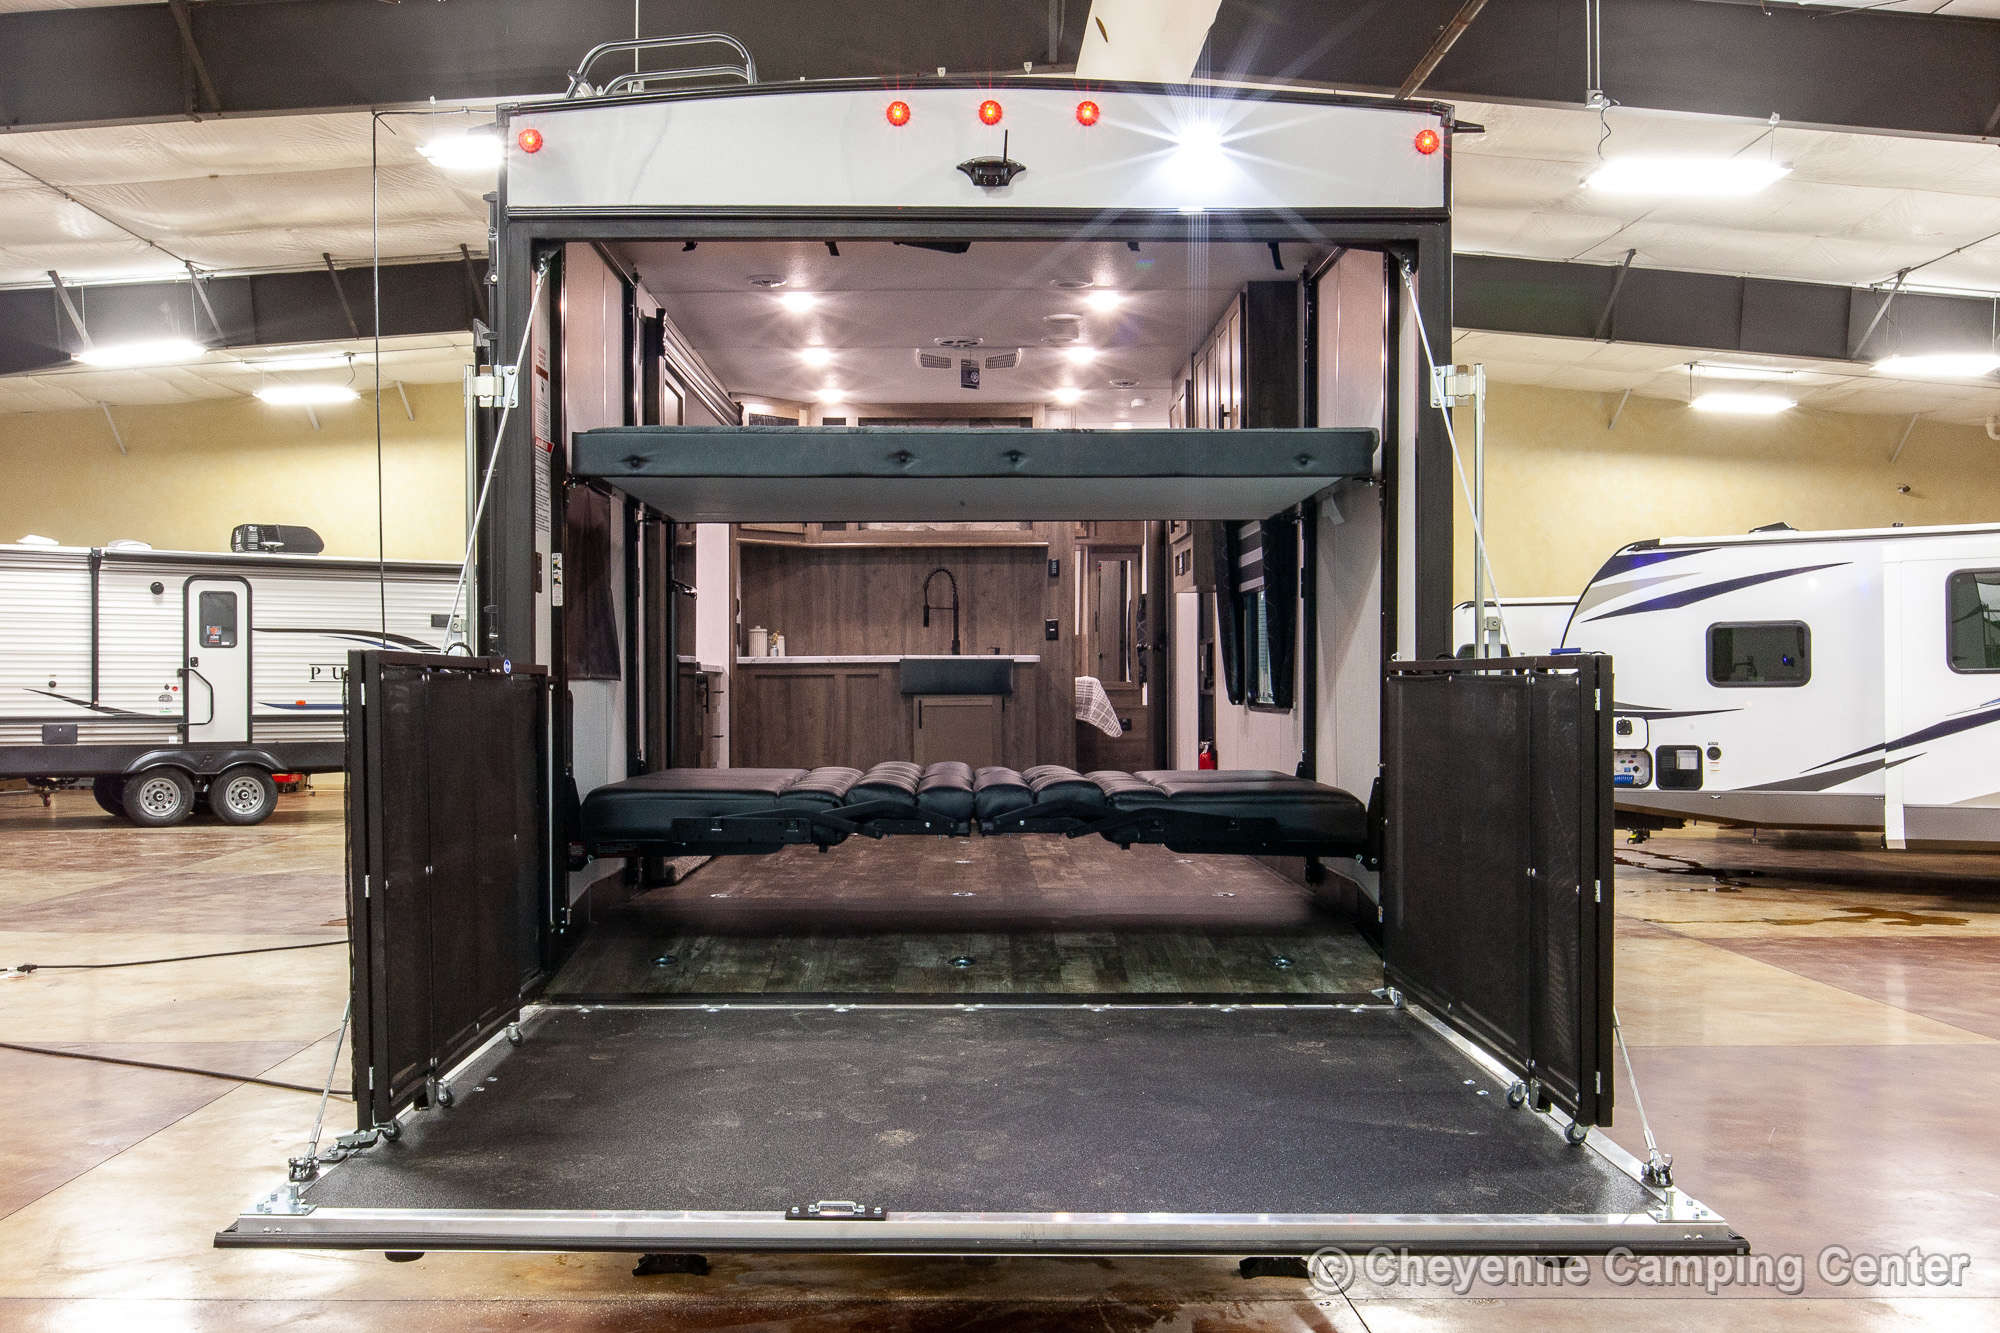 2022 Forest River Cherokee Wolf Pack 23PACK15 Bunkhouse Toy Hauler Travel Trailer Exterior Image